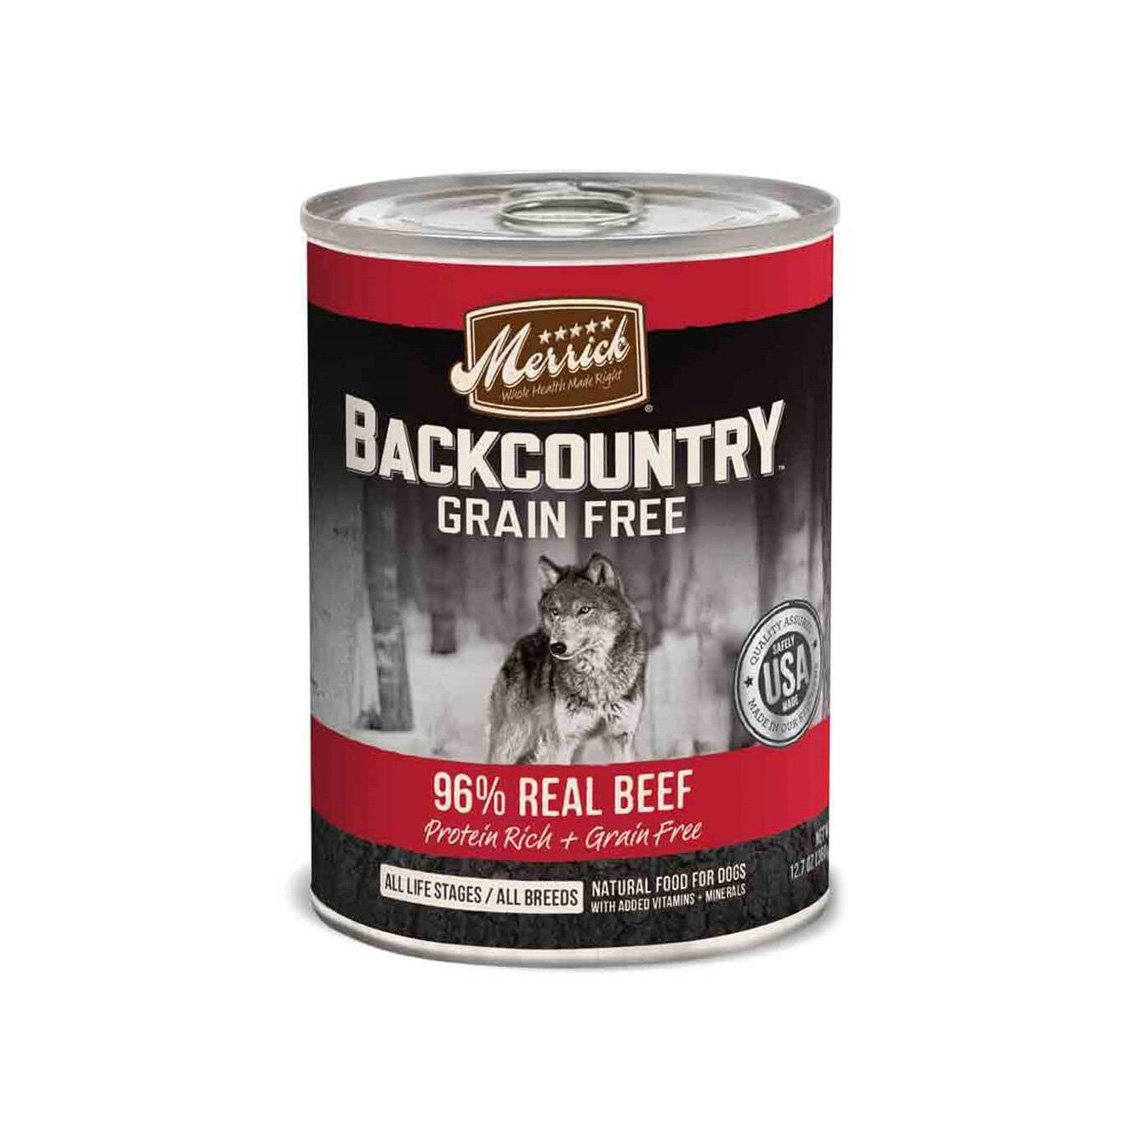 Merrick Backcountry 96% Real Meat Canned Dog Food